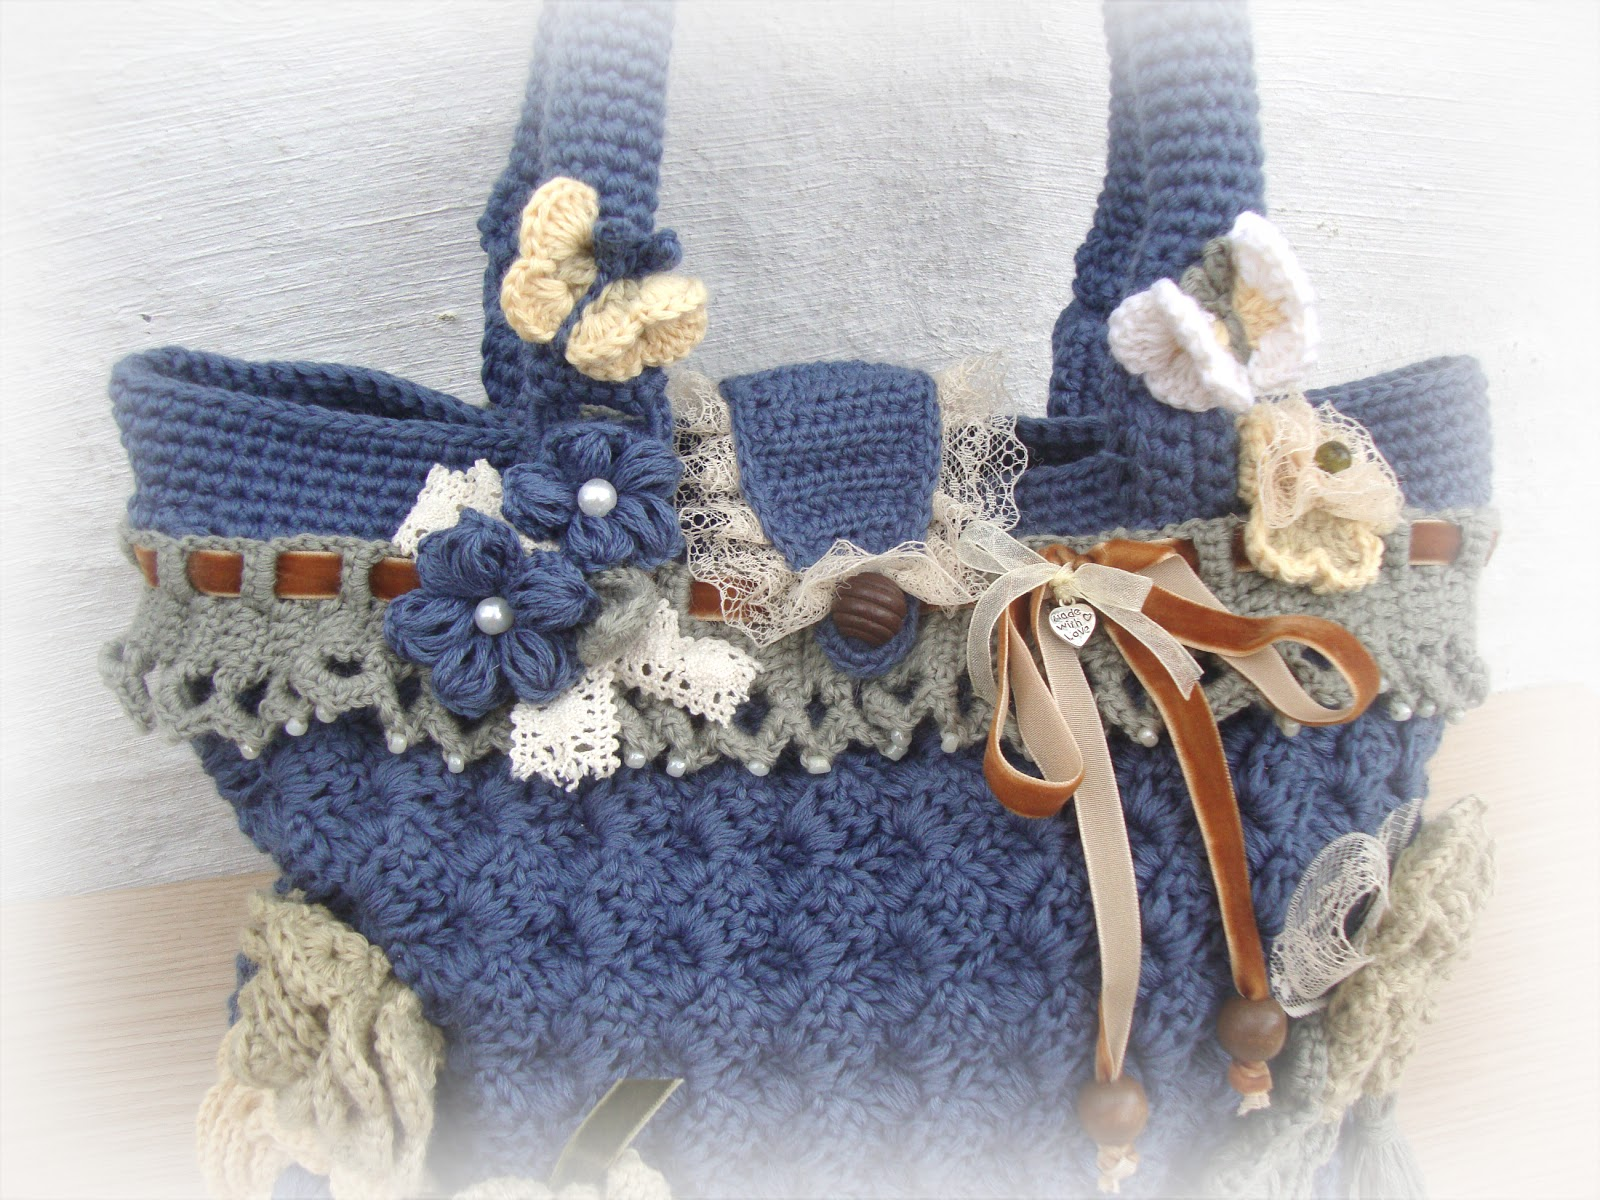 Handmade Crochet Handbags : Tinas handicraft : crochet handmade bag